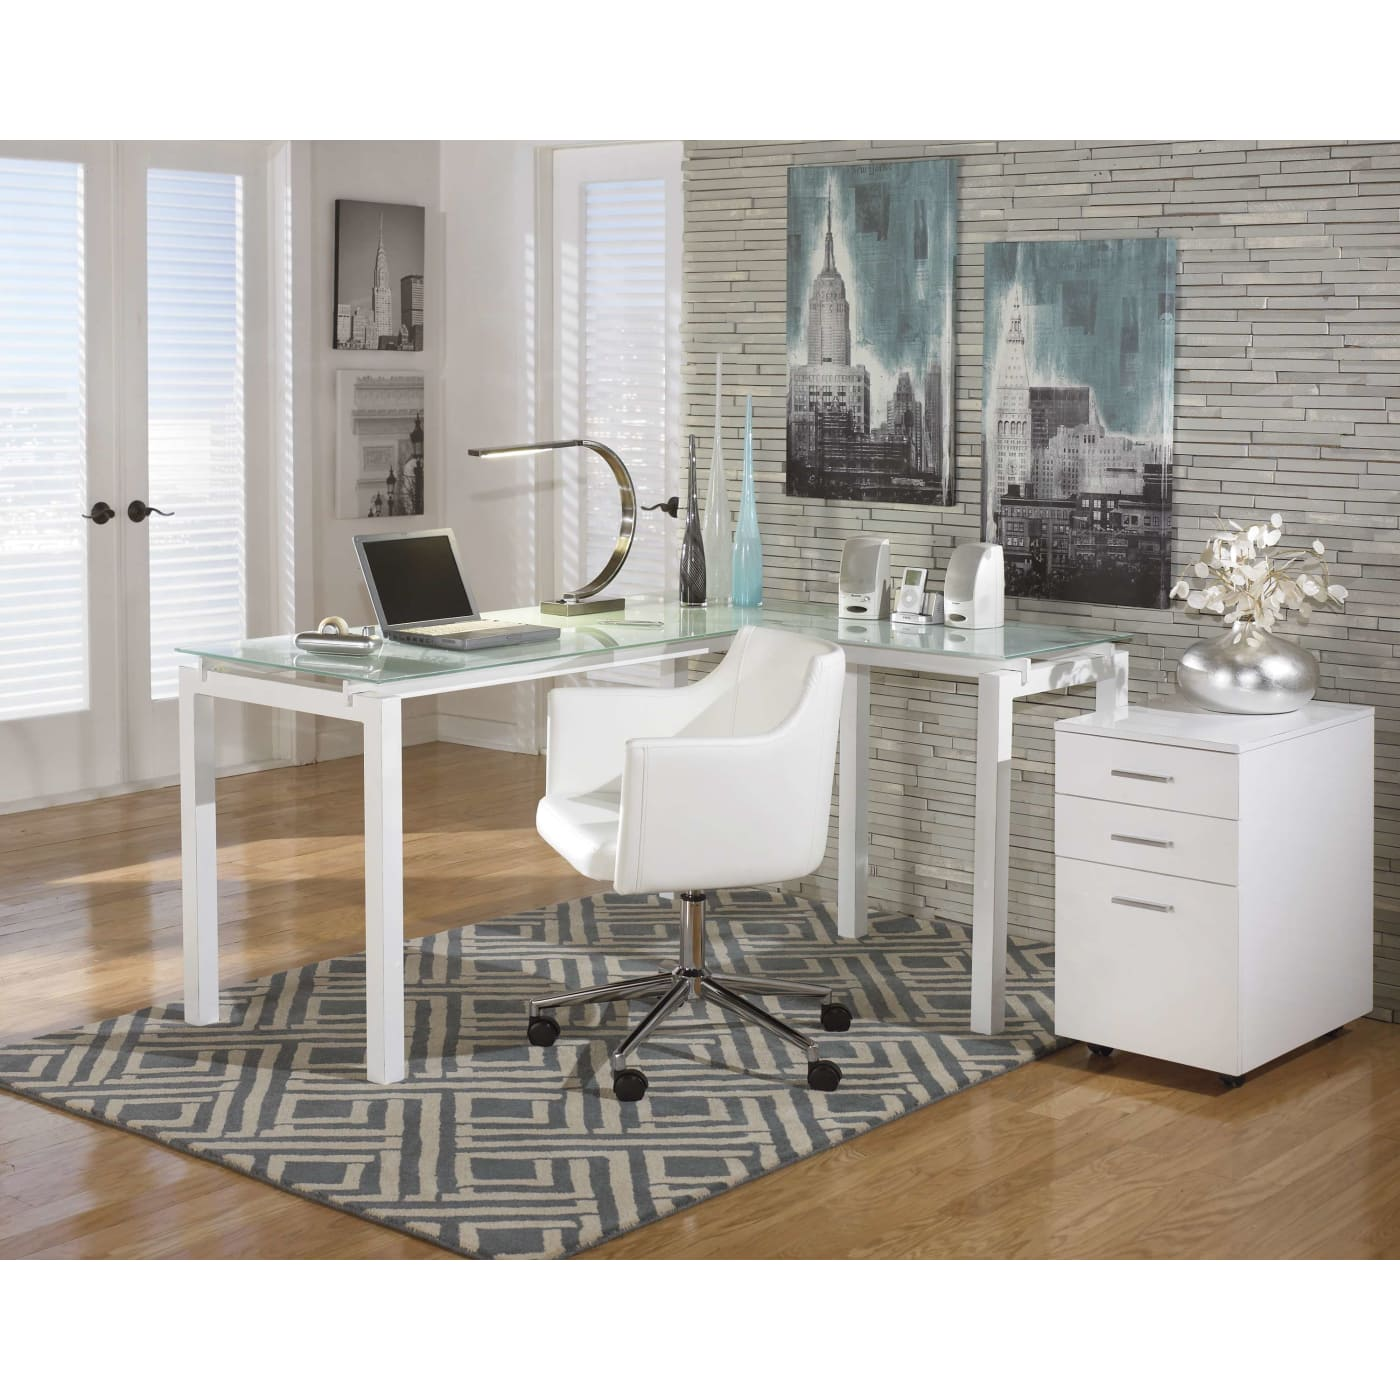 Signature Design By Ashley Baraga White L-Desk & Reviews